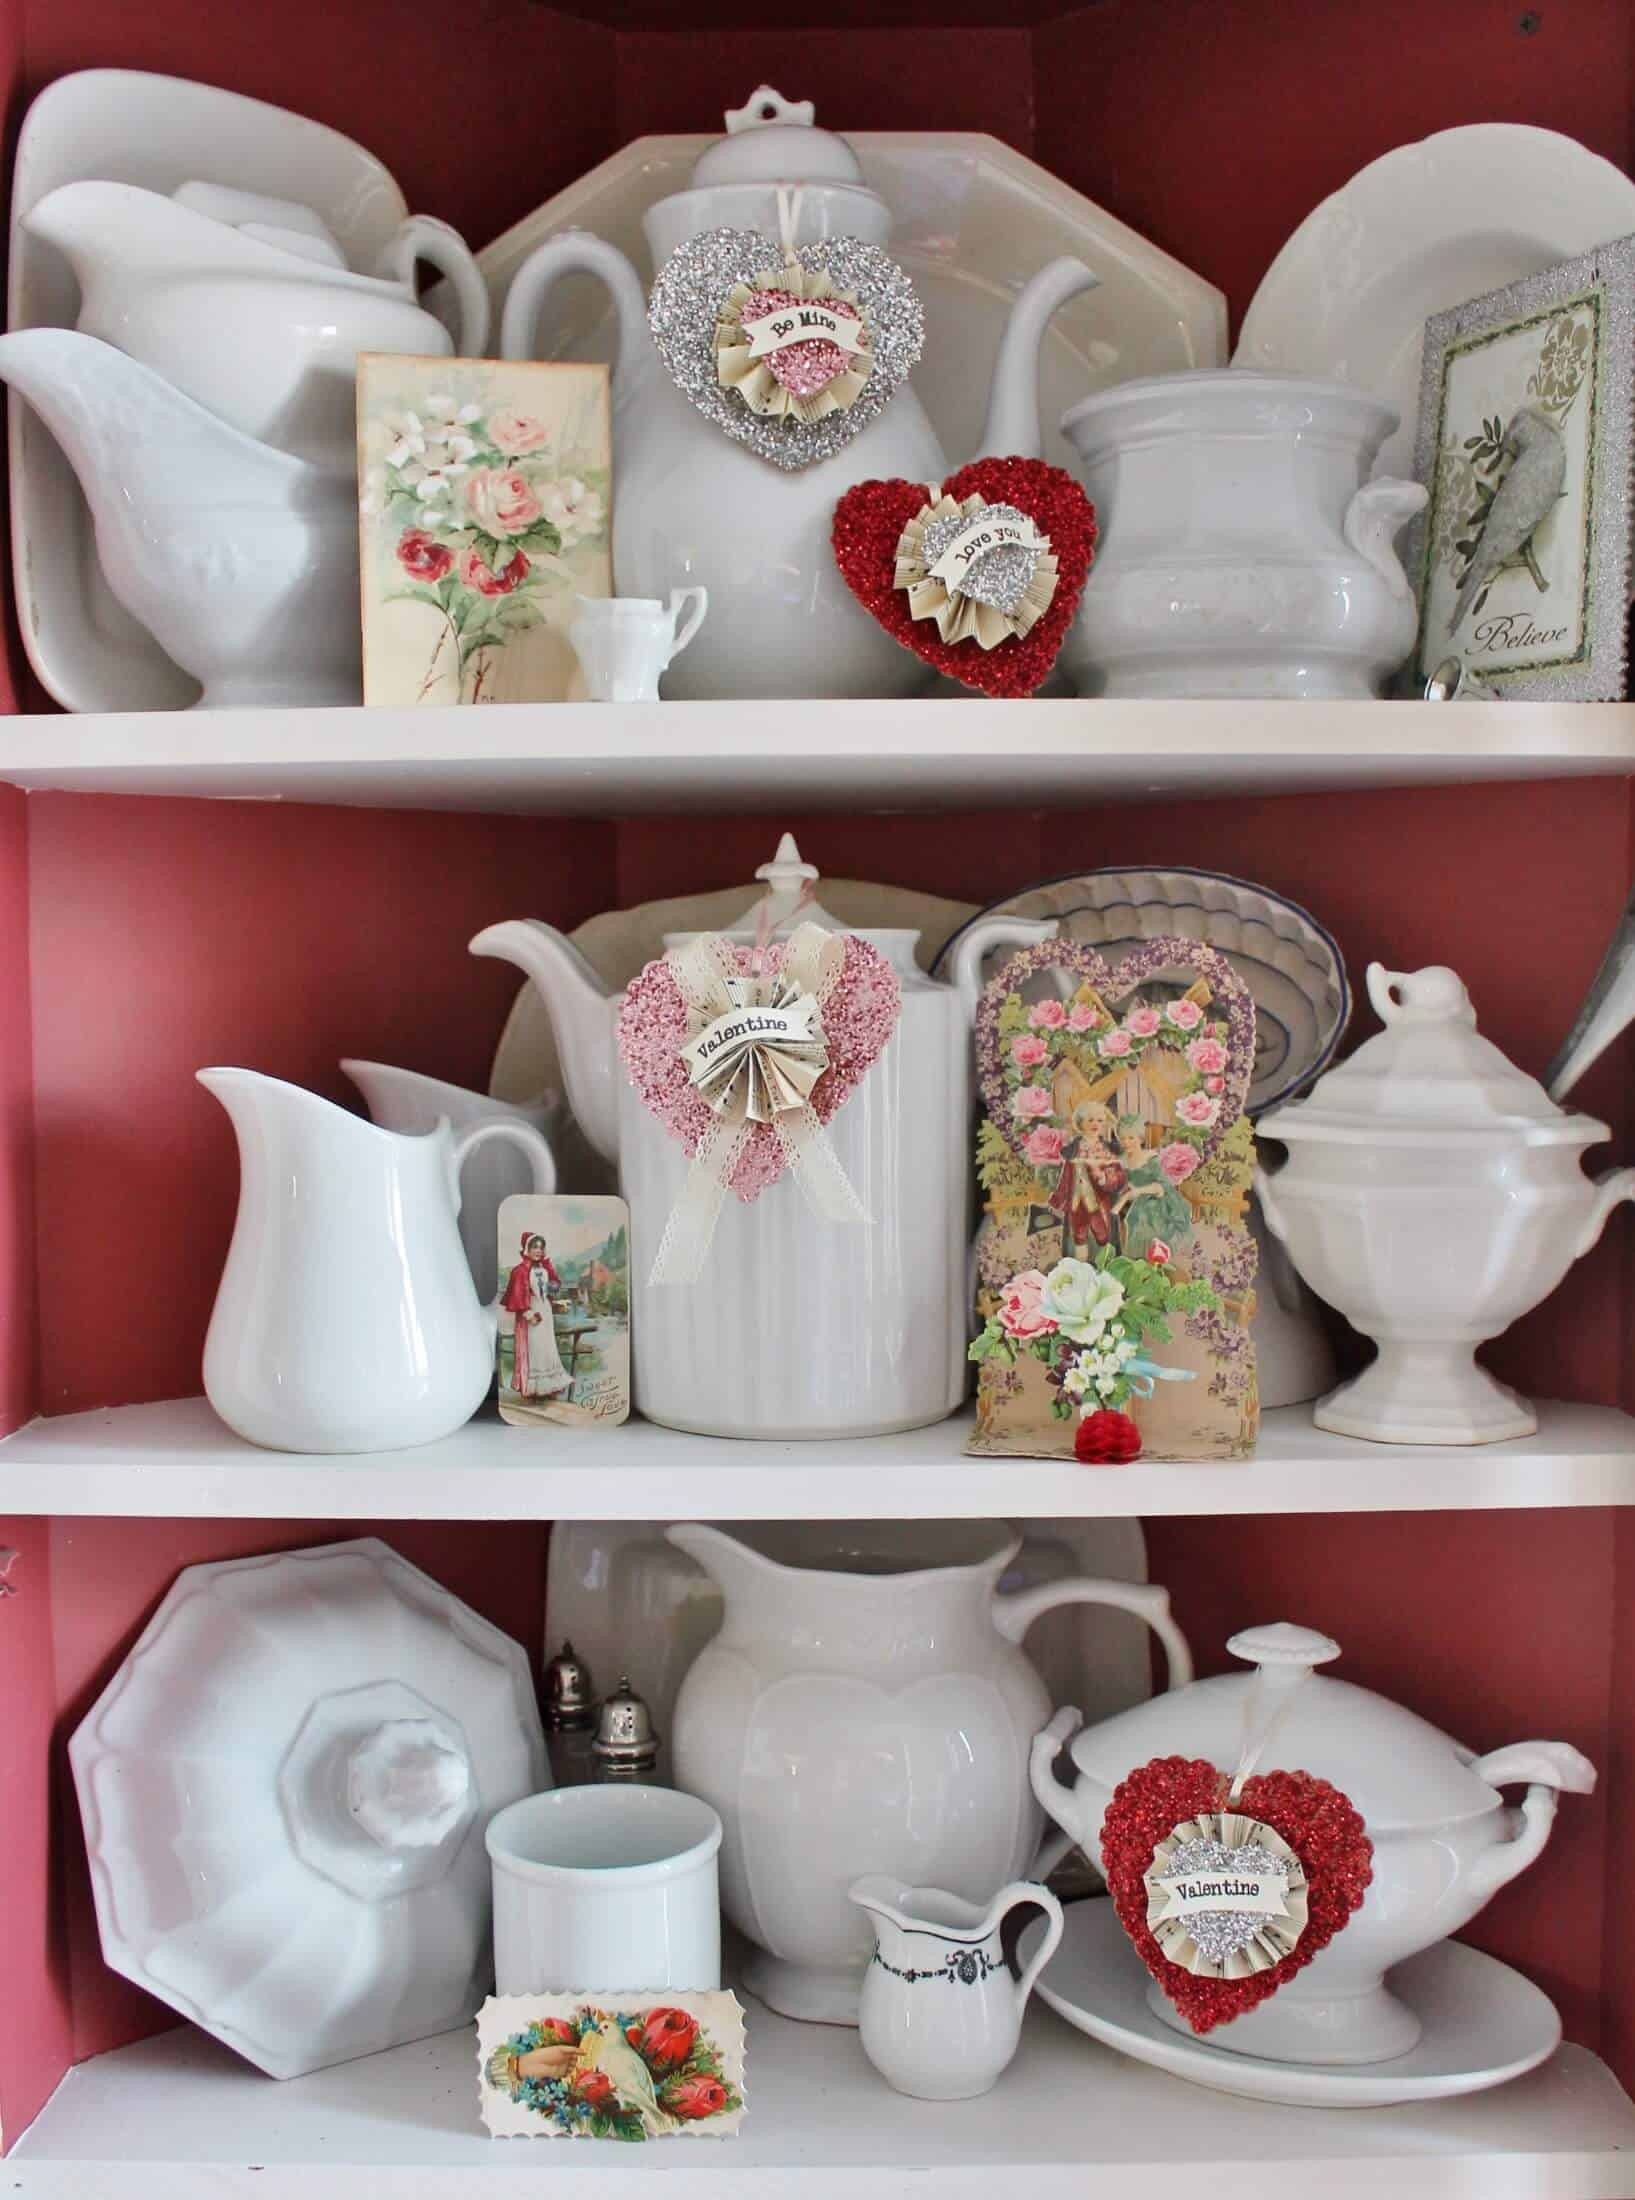 Ironstone cupboard with glittery valentines